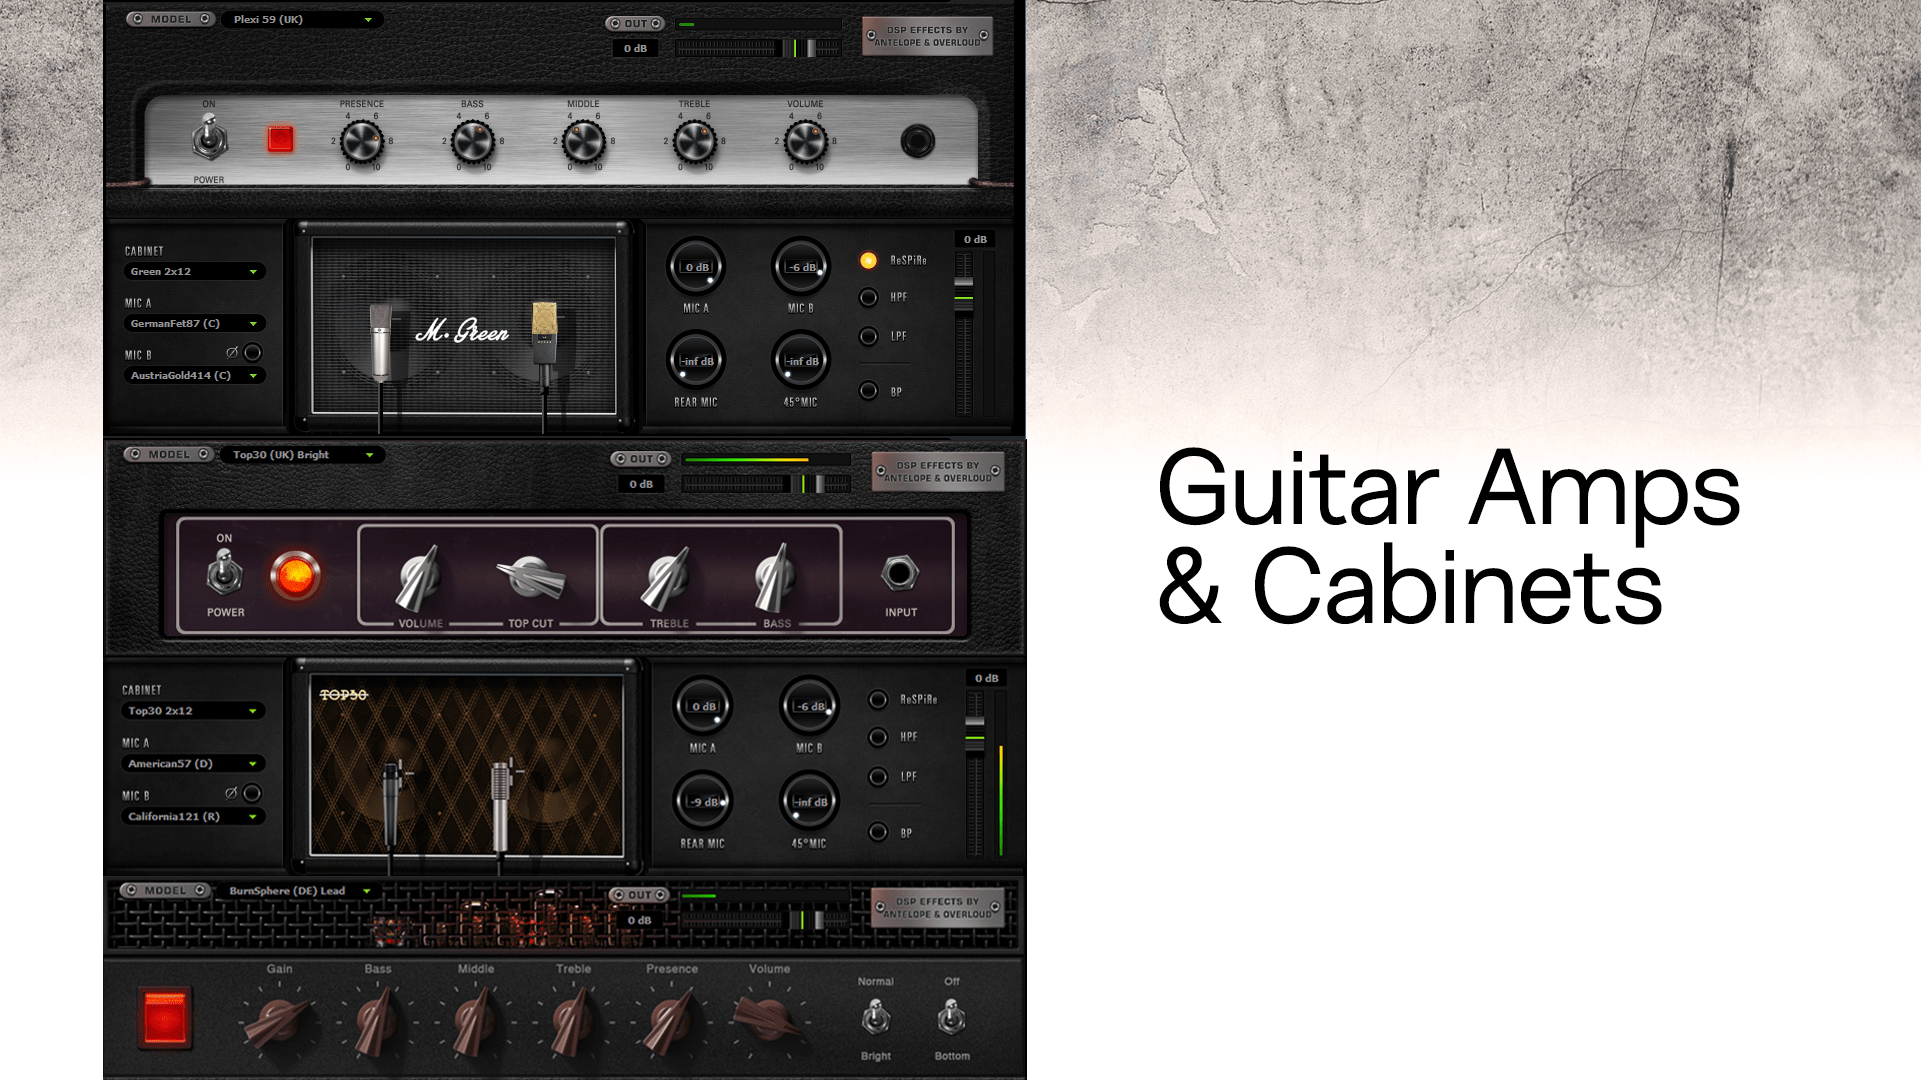 Guitar amps and cabinets